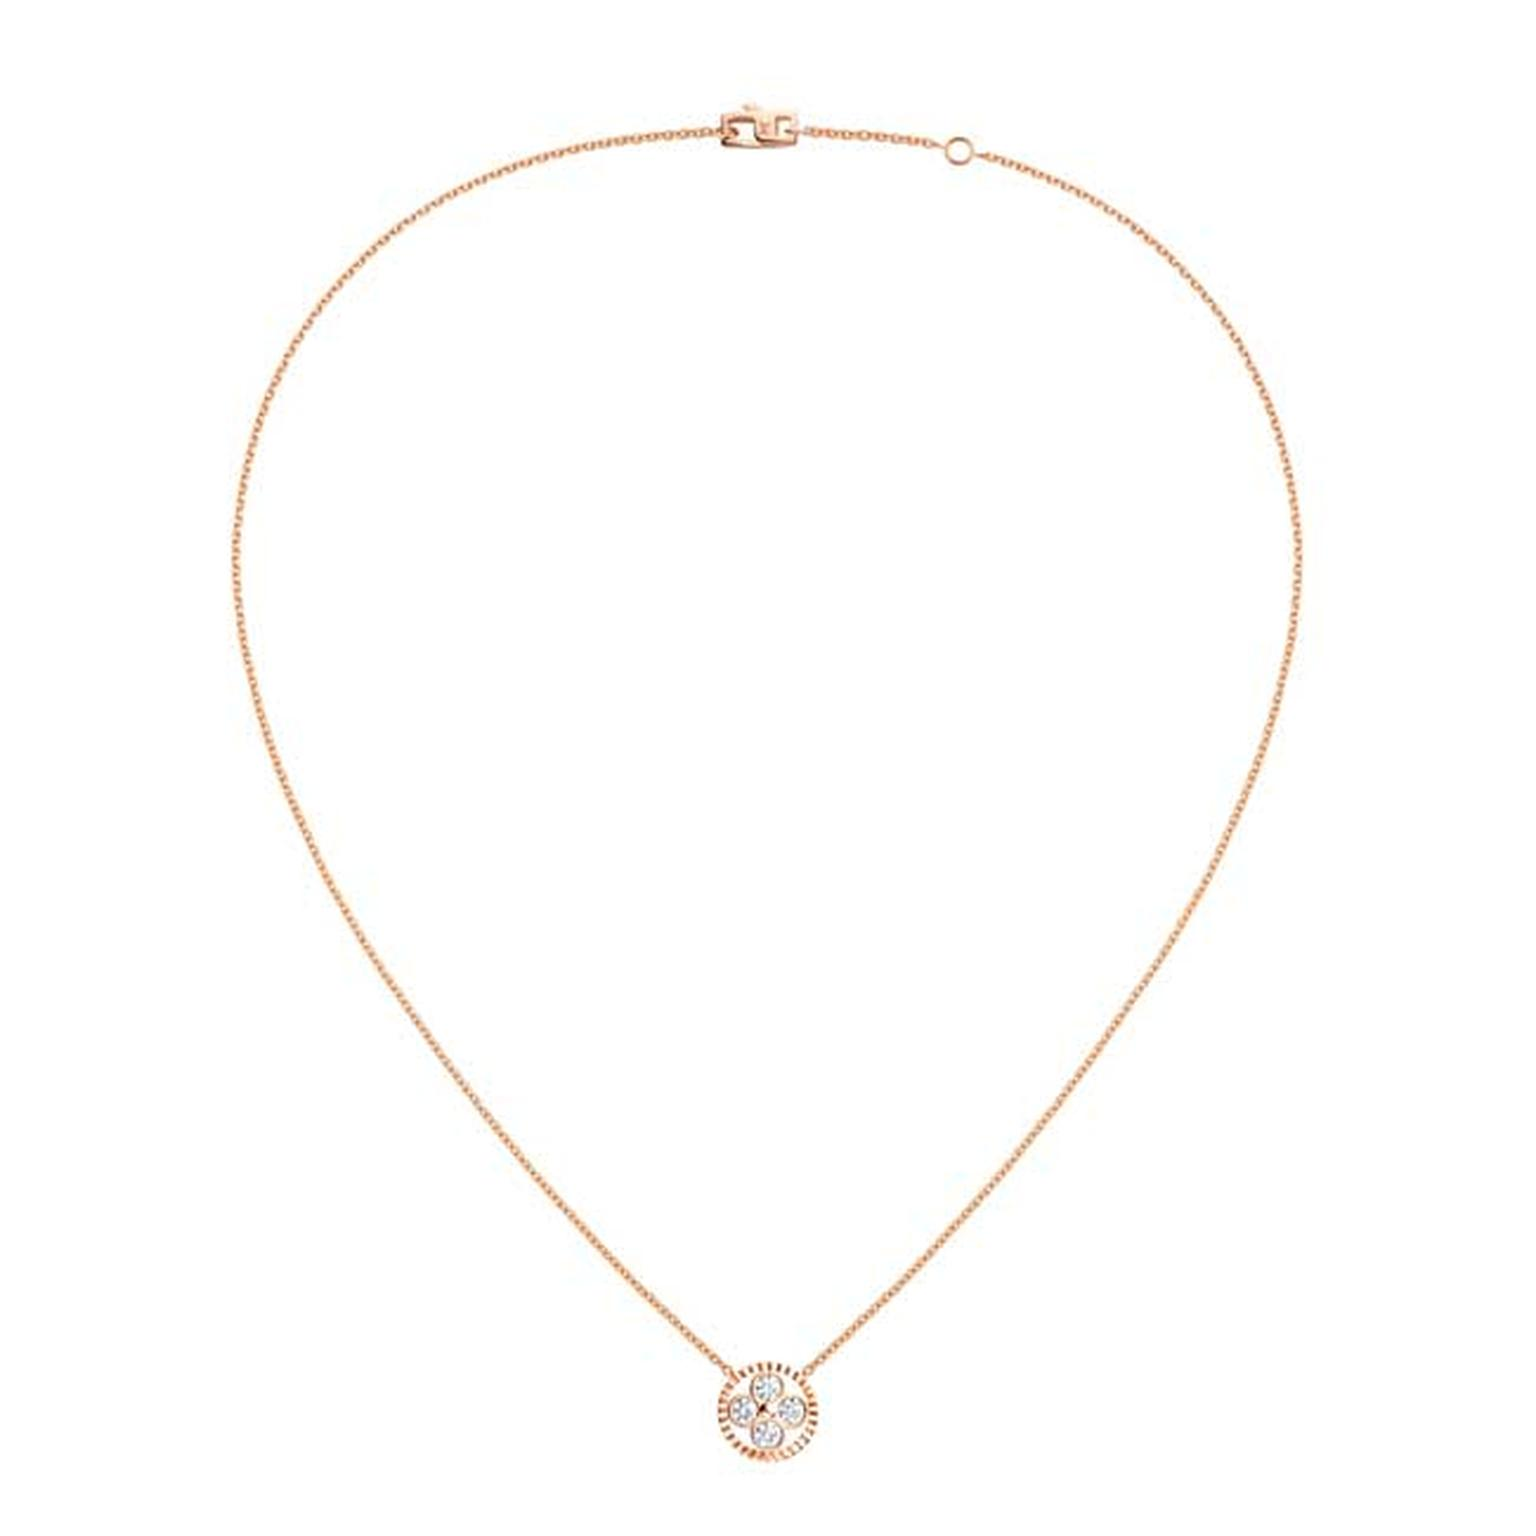 Louis Vuitton Monogram Sun and Stars collection Sun pendant necklace in rose gold_main